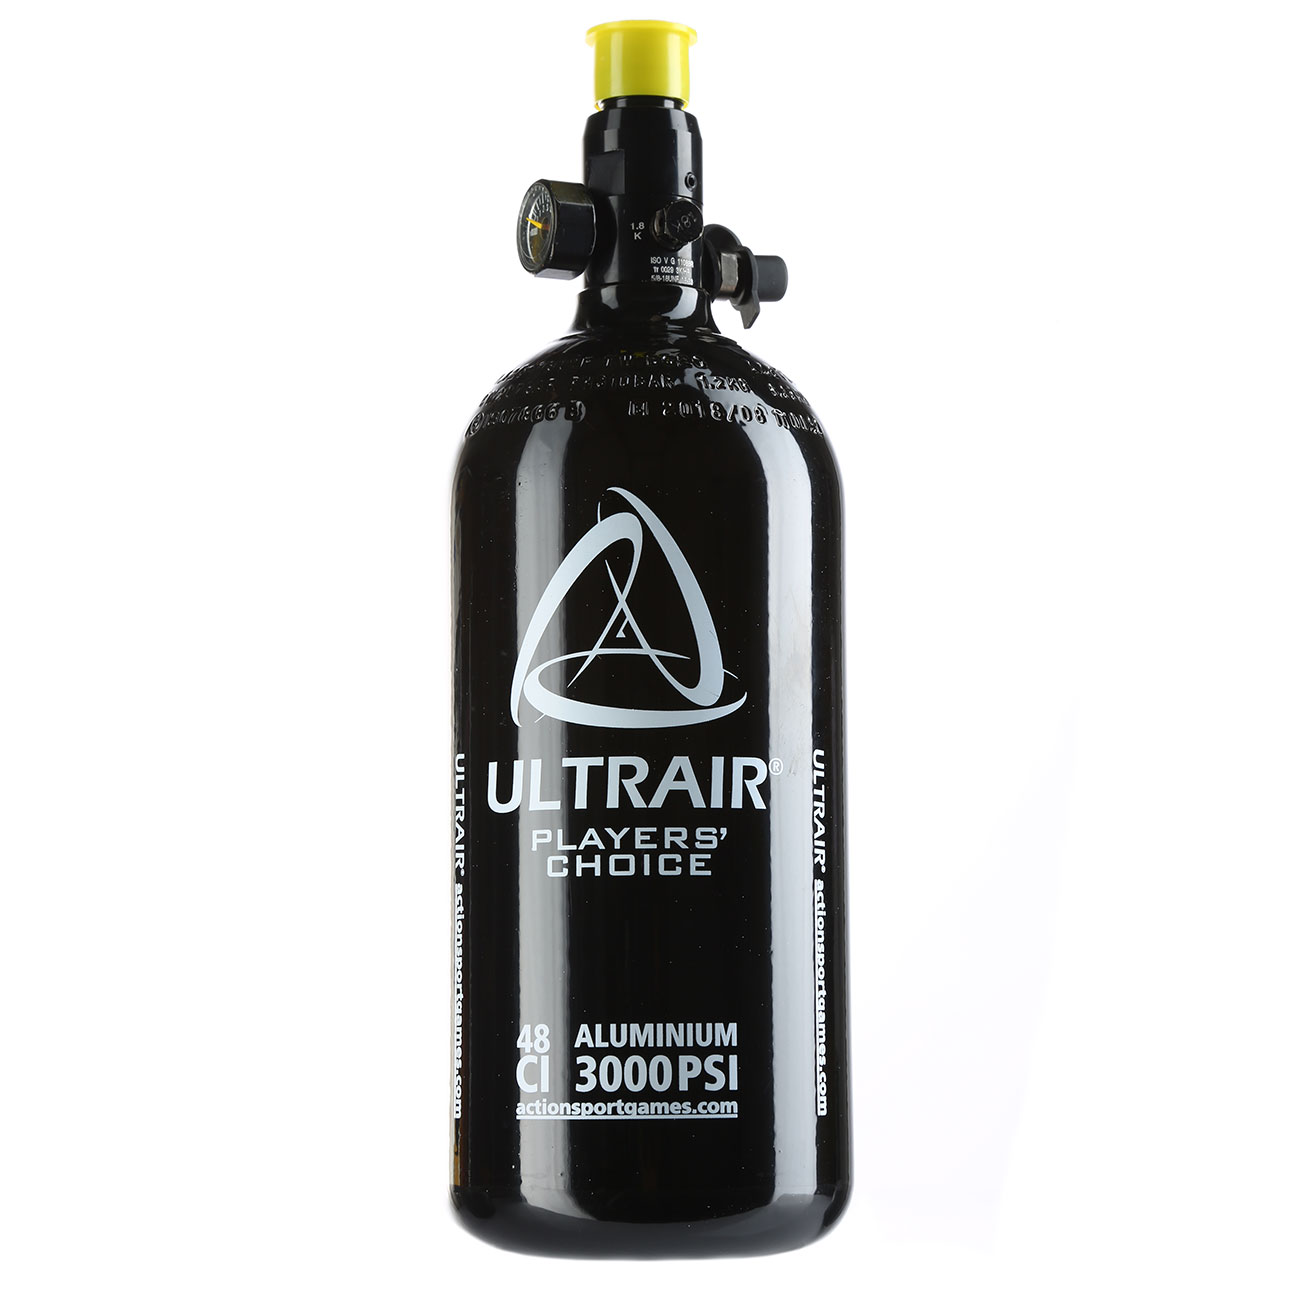 Ultrair 0,8L / 48ci HPA Tank mit Regulator 3000 PSI / 850 PSI schwarz 0